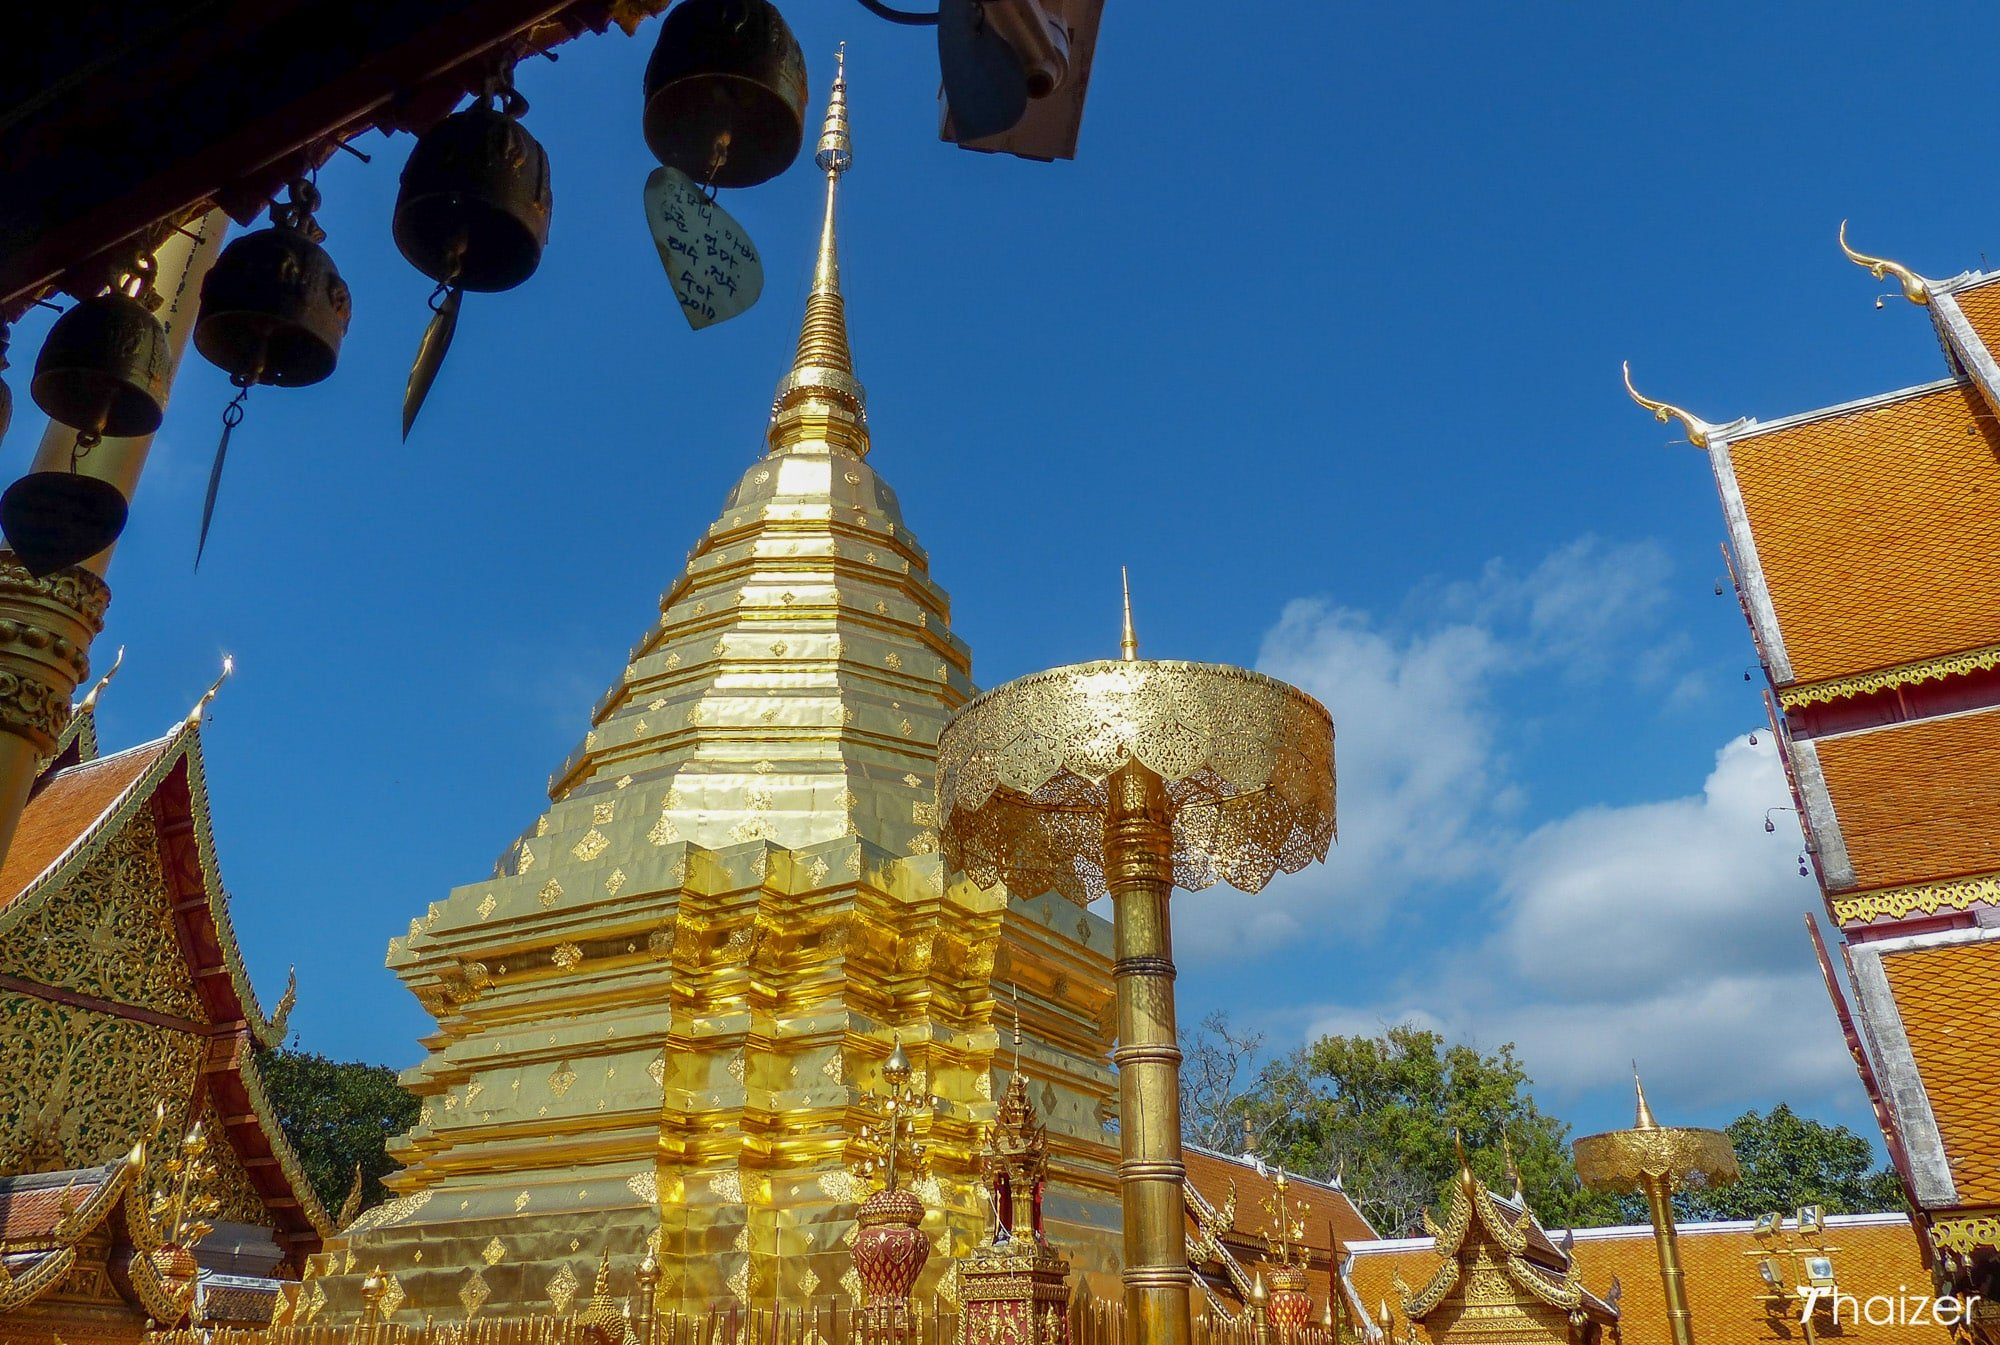 wat-phra-that-doi-suthep-chiang-mai Wat Phra That Doi Suthep, Chiang Mai